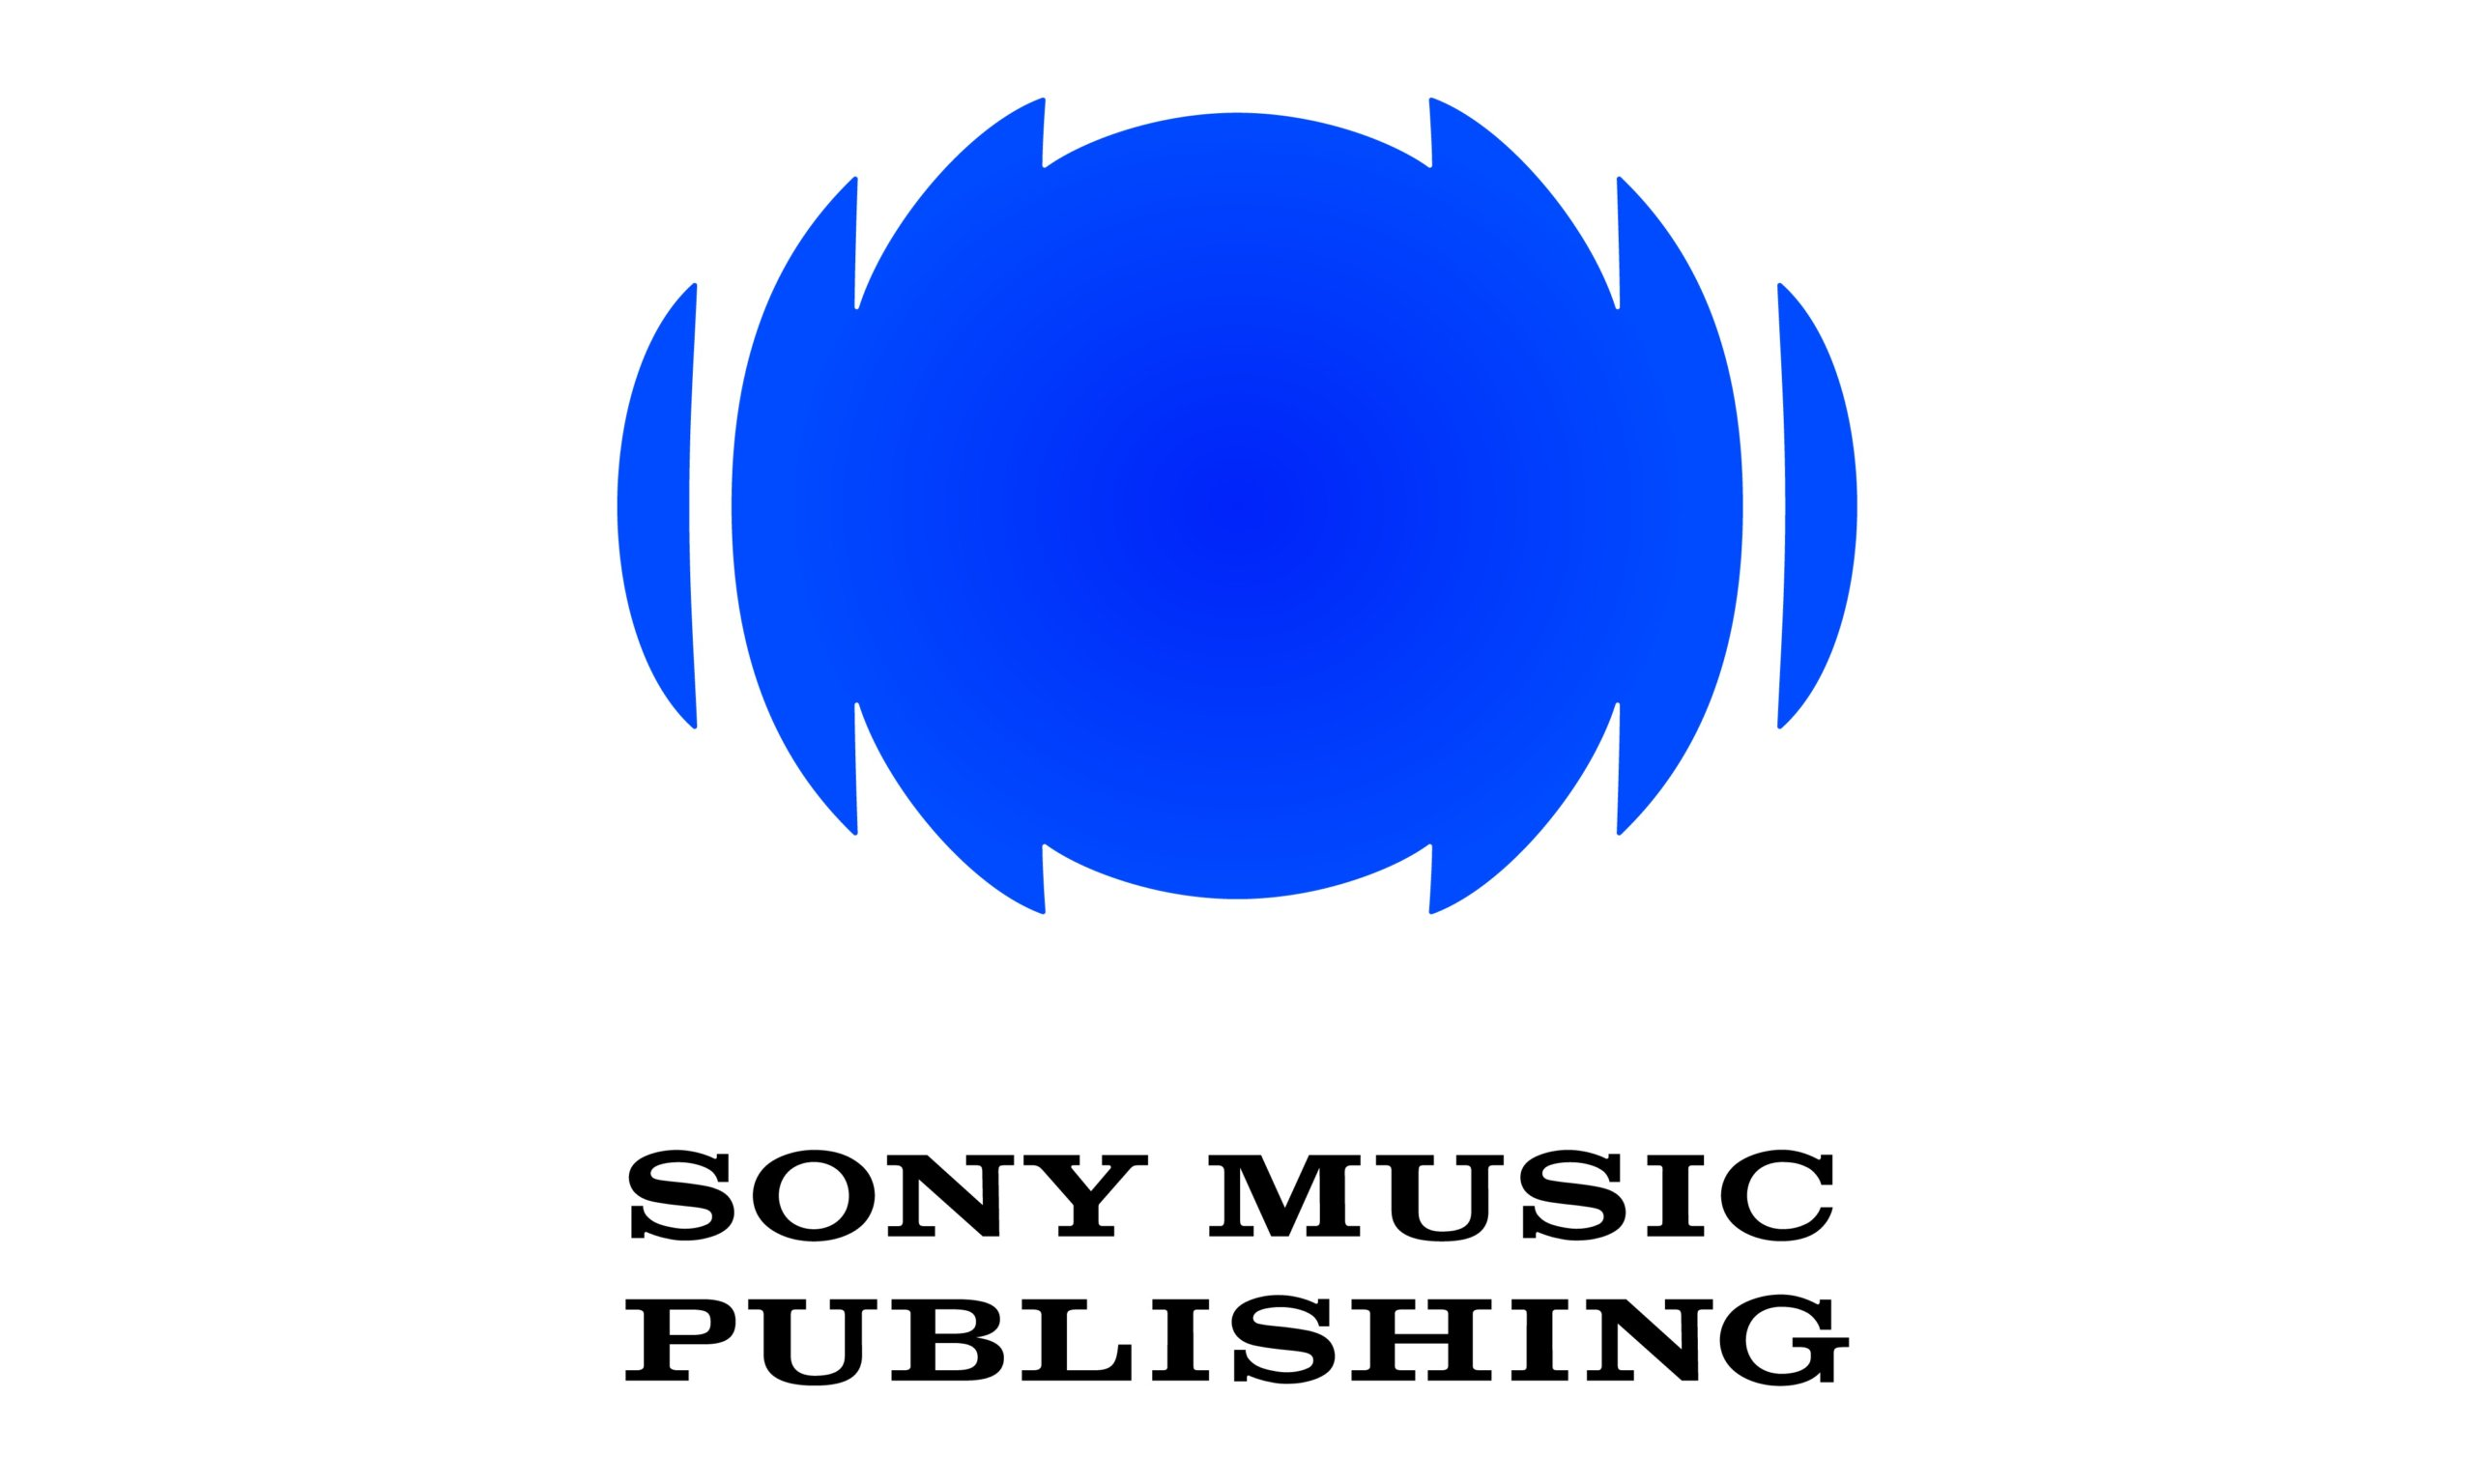 Sony Music Publishing returns with a 'modern vision' – via a re-brand of Sony/ATV – Music Business Worldwide